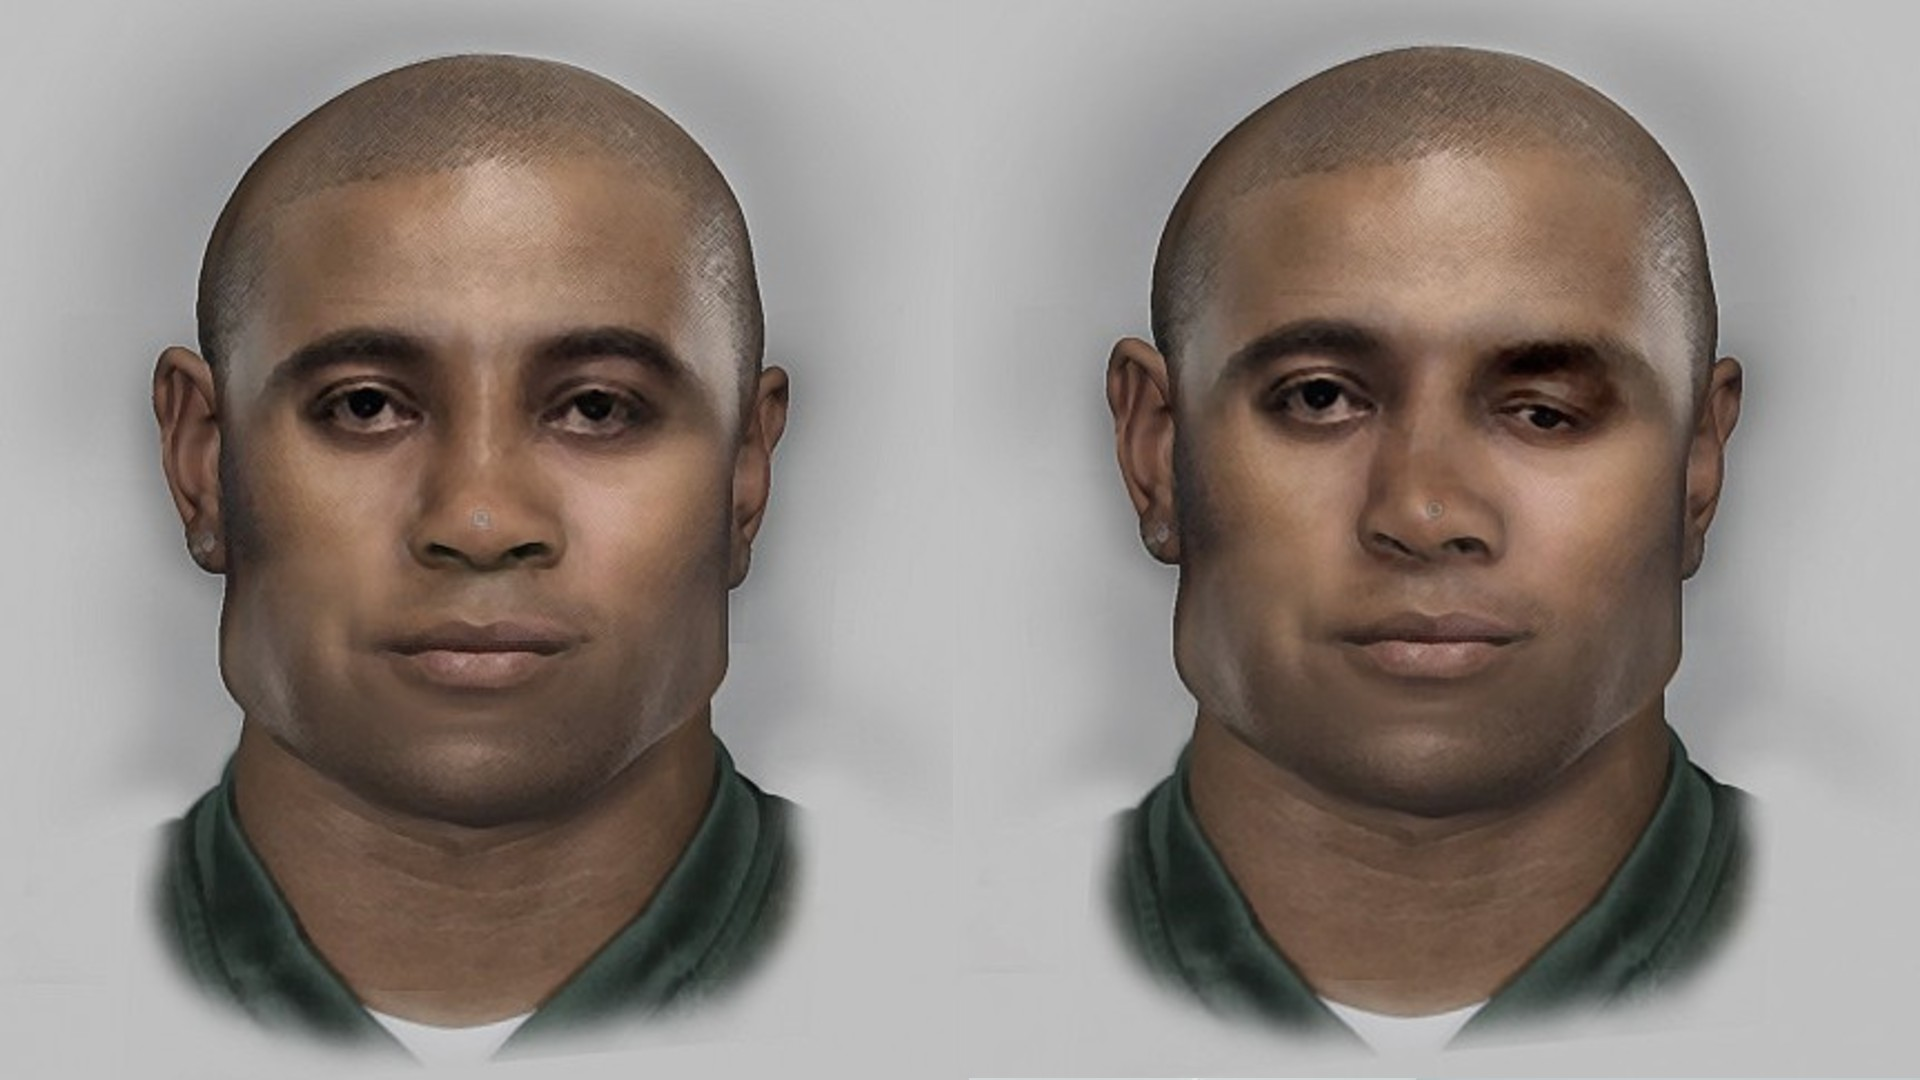 Police were able to produce composite photos based on DNA from the skeletal remains that were first discovered at Haviland and Loucks roads.